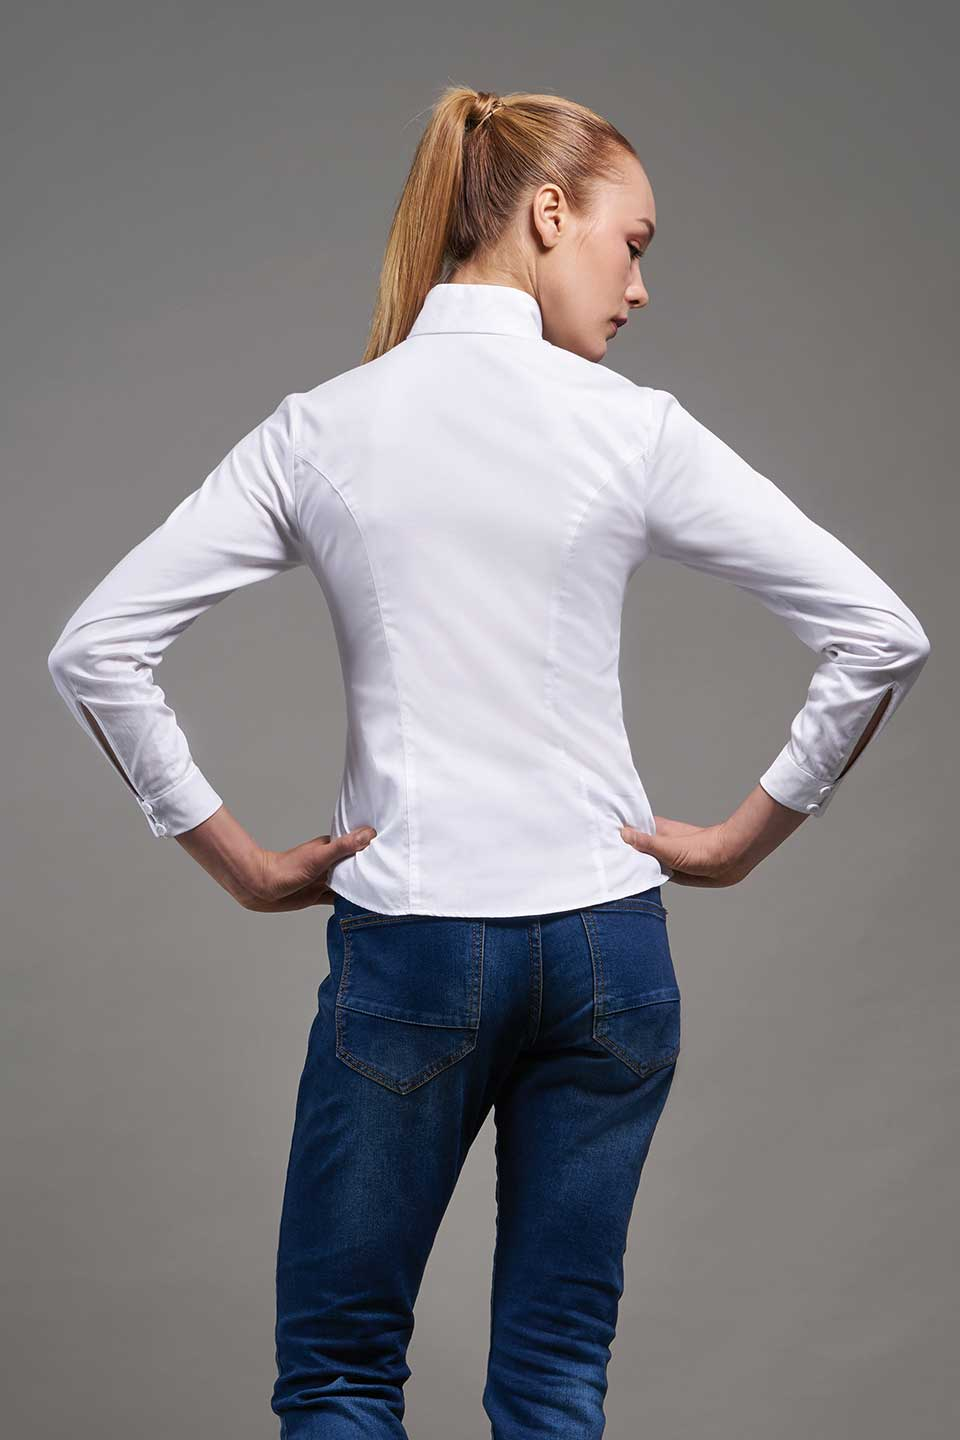 A Shirt by Adam Liew Charlotte White Shirt On Model